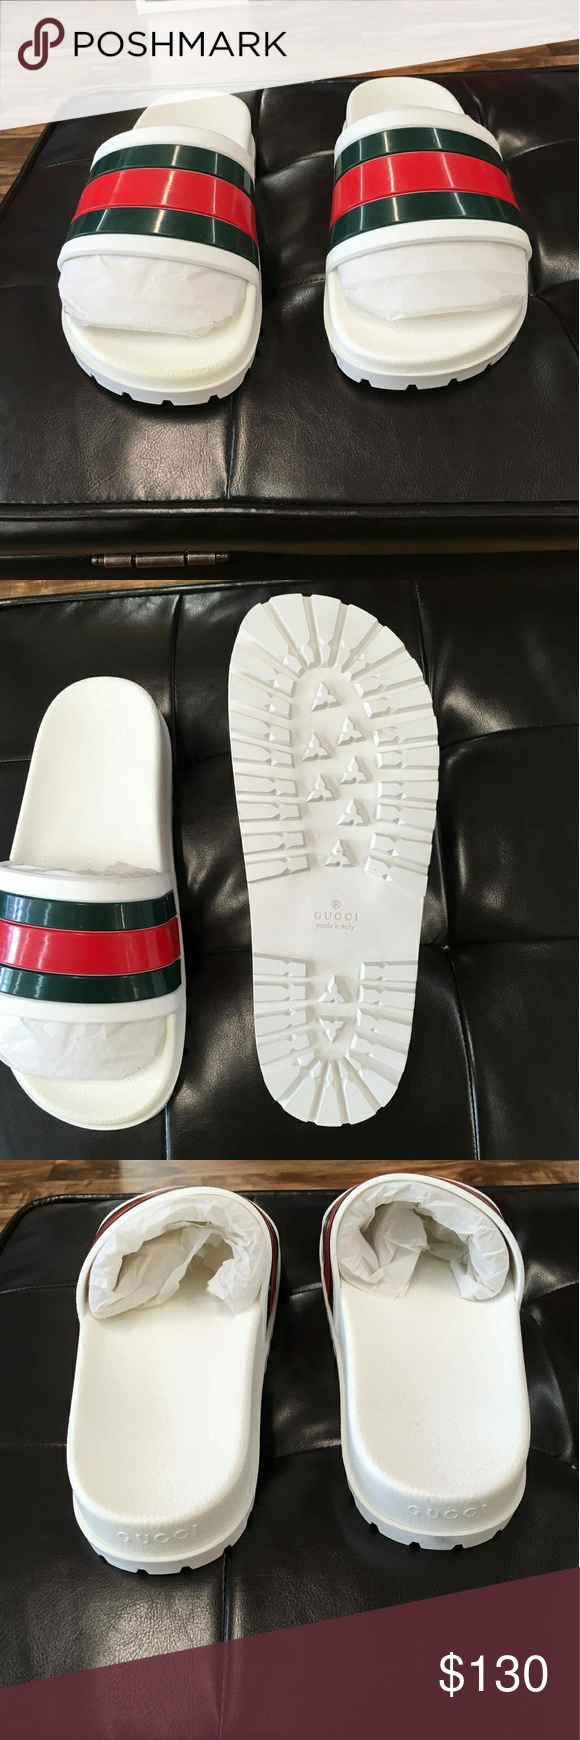 9c34a7552 Gucci slippers New without original packaging Gucci Shoes Sandals &  Flip-Flops